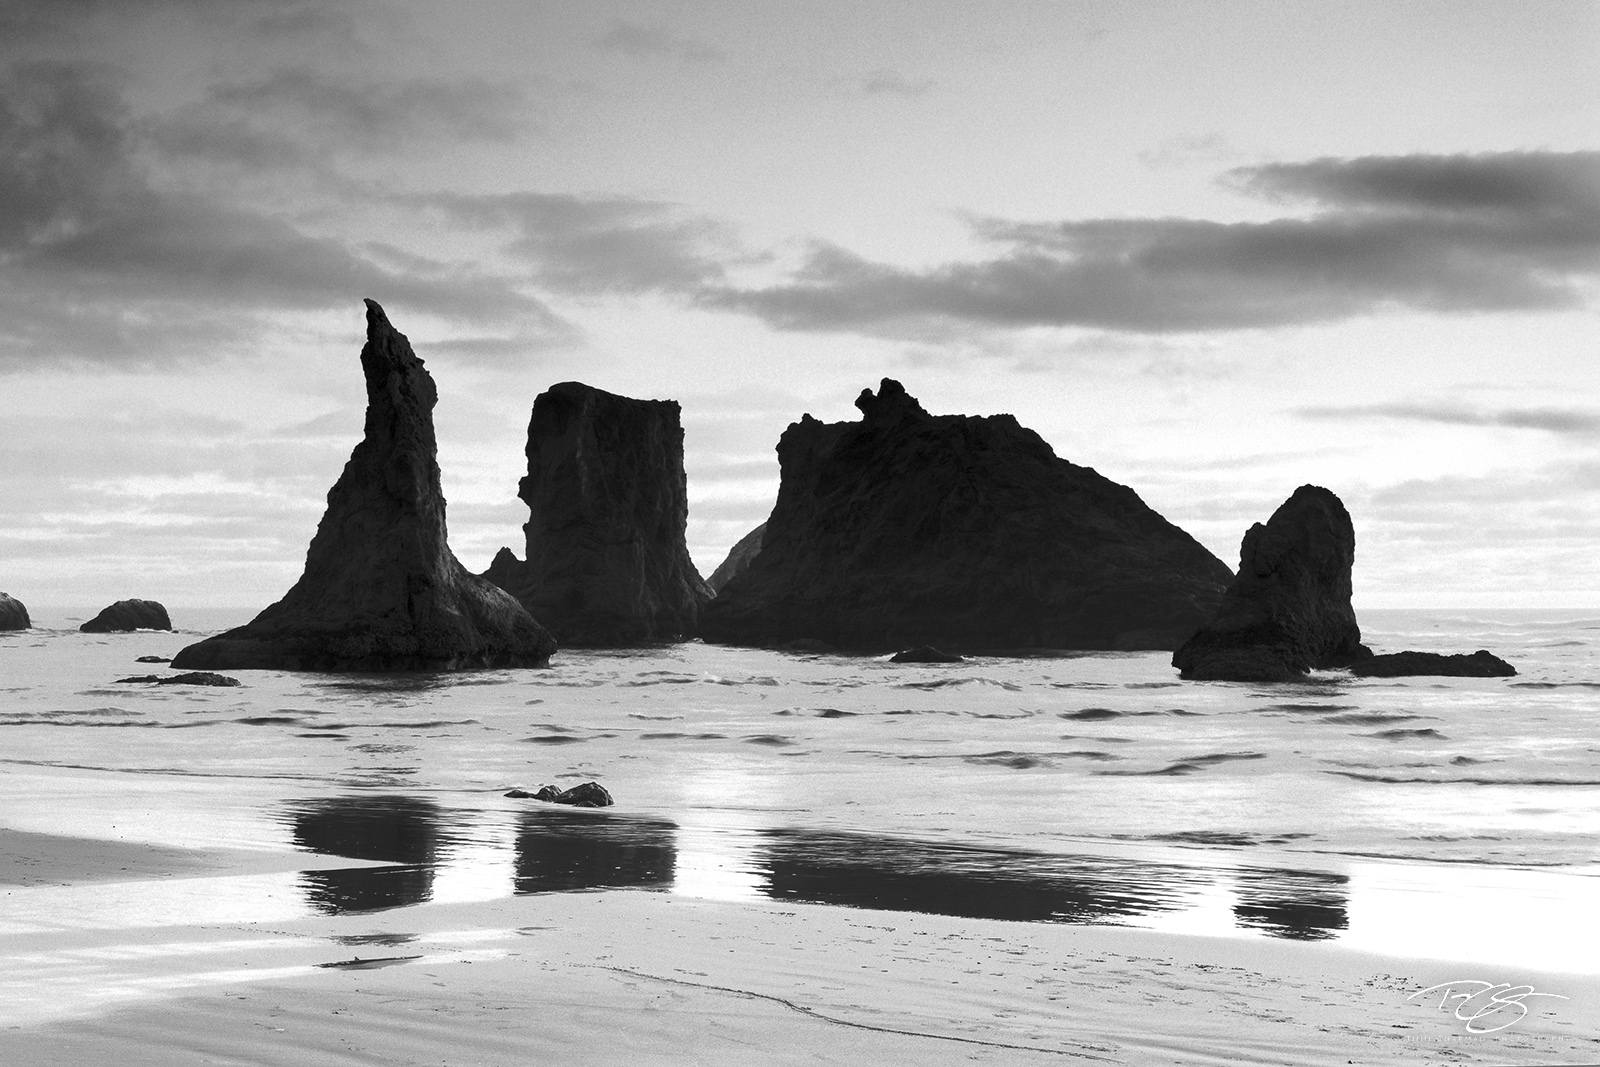 The iconic sea stacks of Bandon Beach silhouetted in the surf